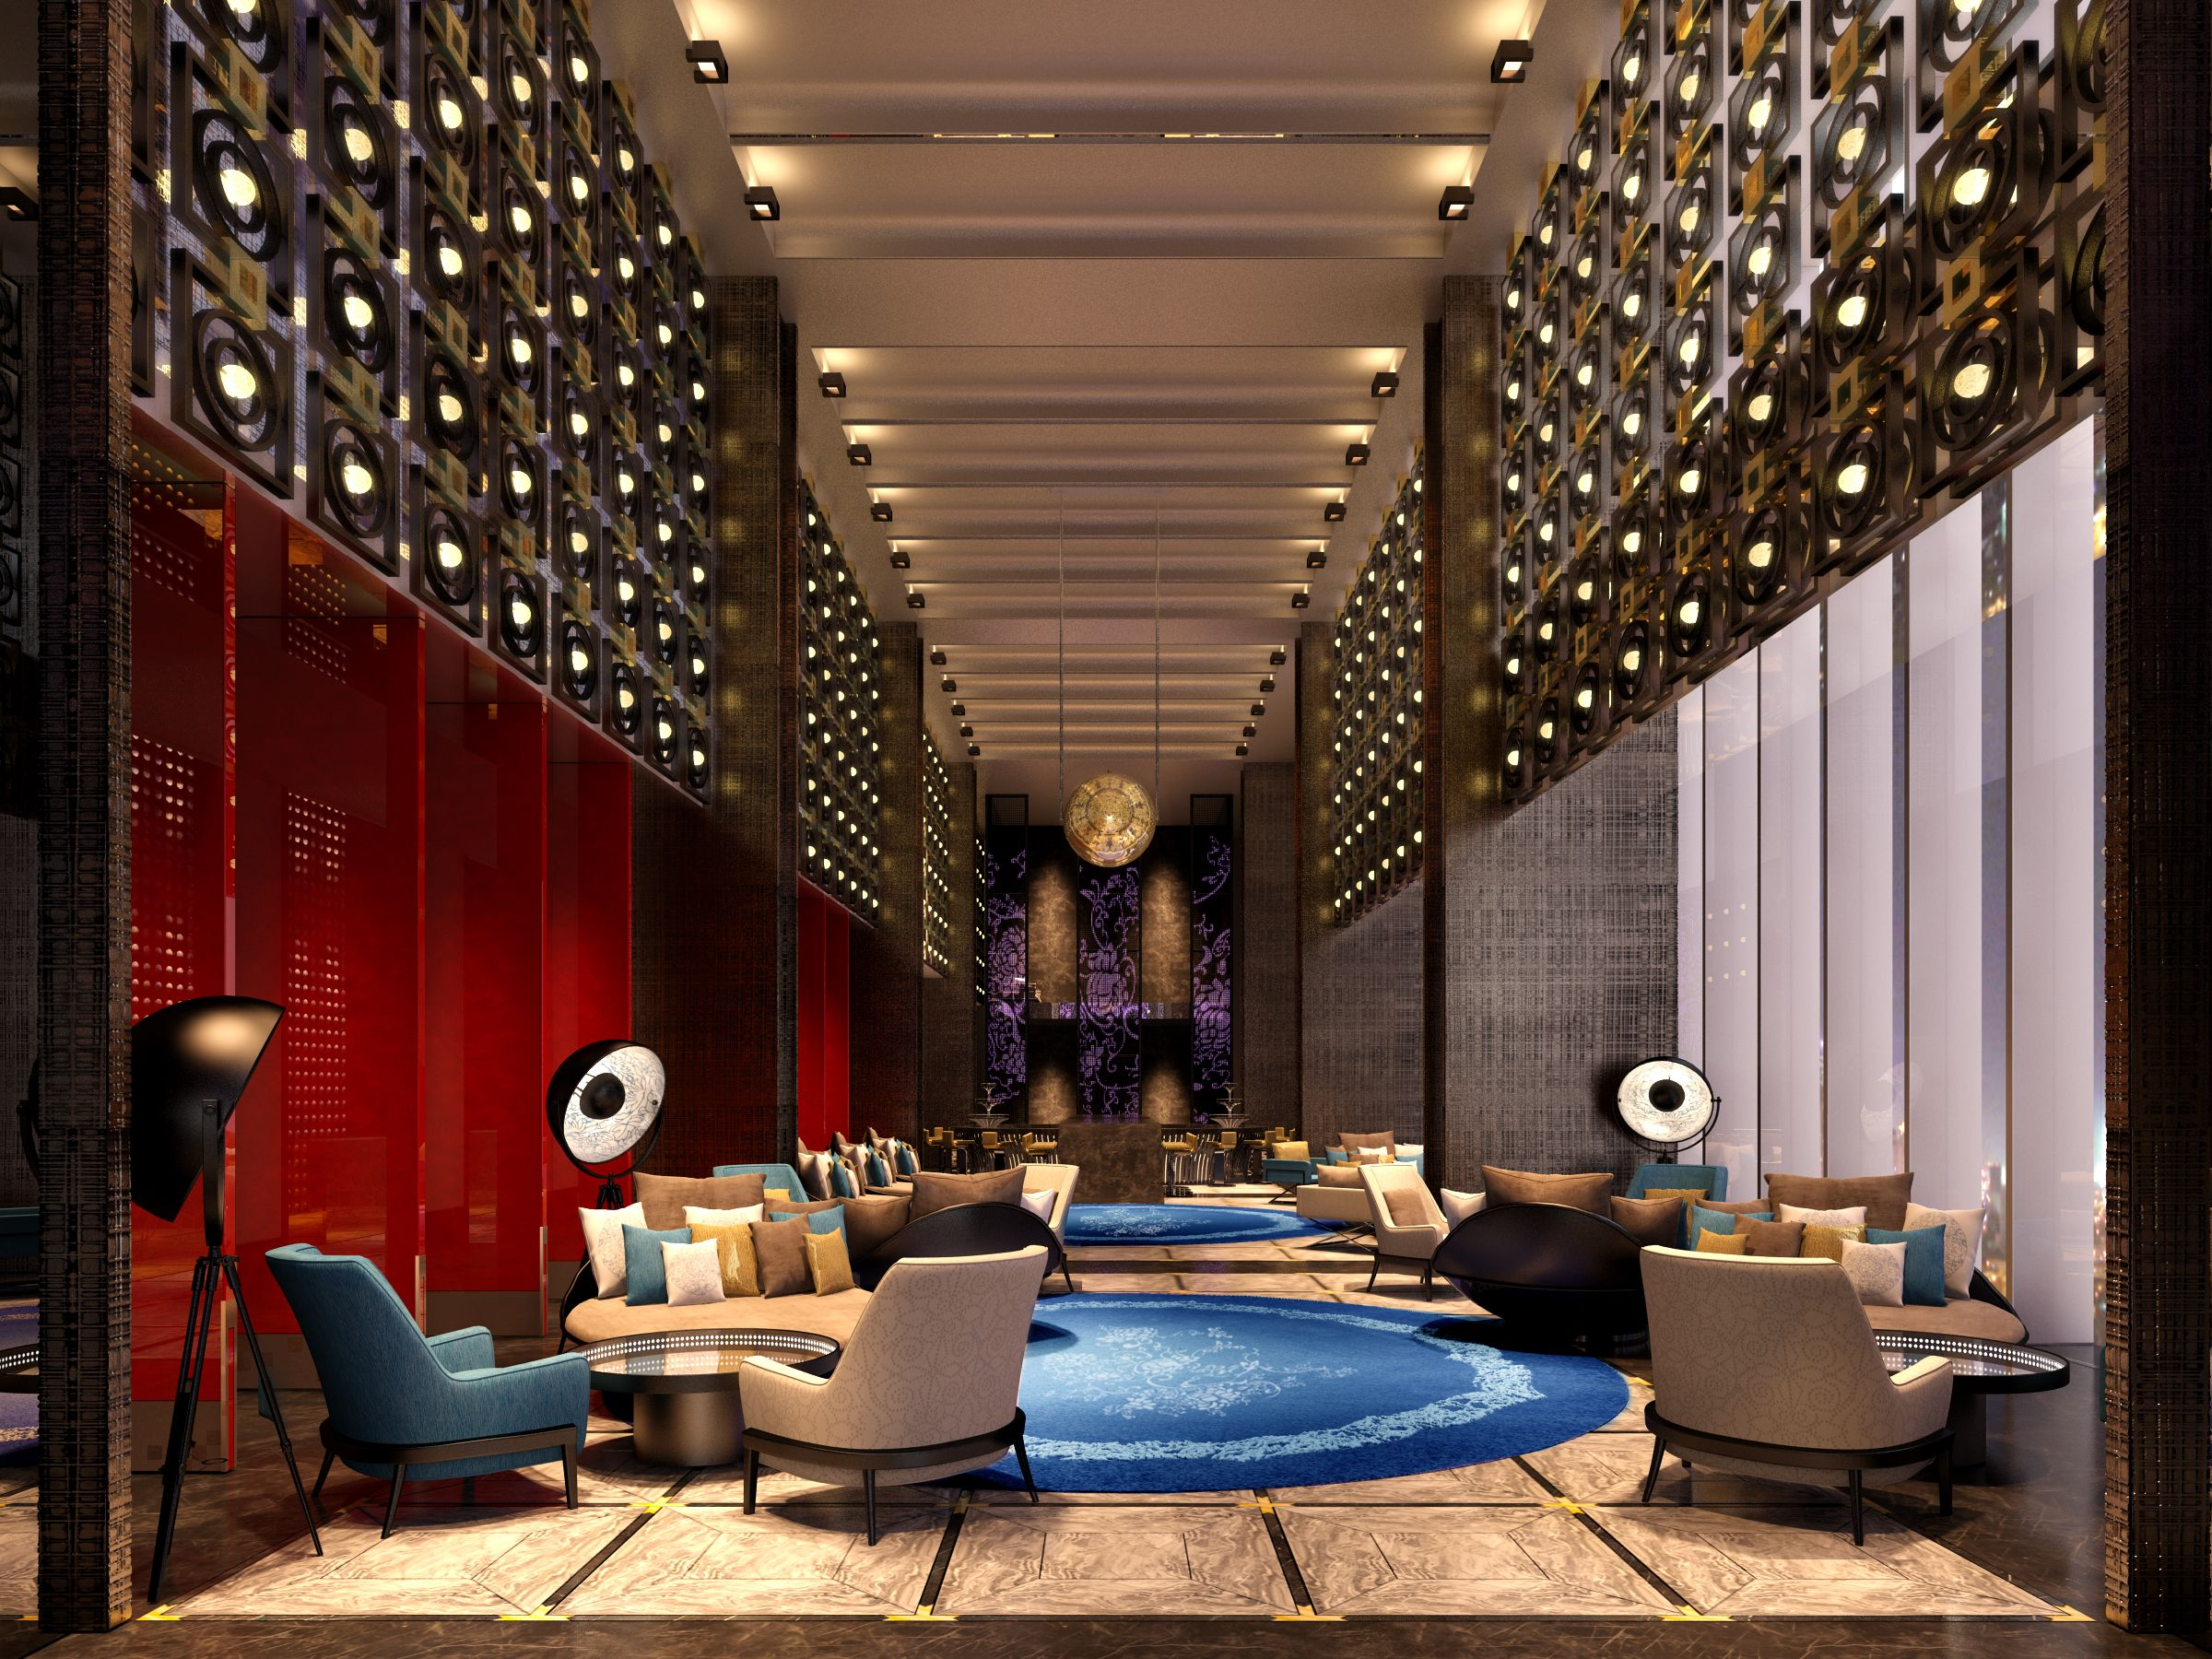 WE WANT YOU! The search is on for CHIEF CONCIERGE to Rock the Empire at W Beijing Chang'an! Send your CV to hr.beijing@whotels.com NOW. an ...